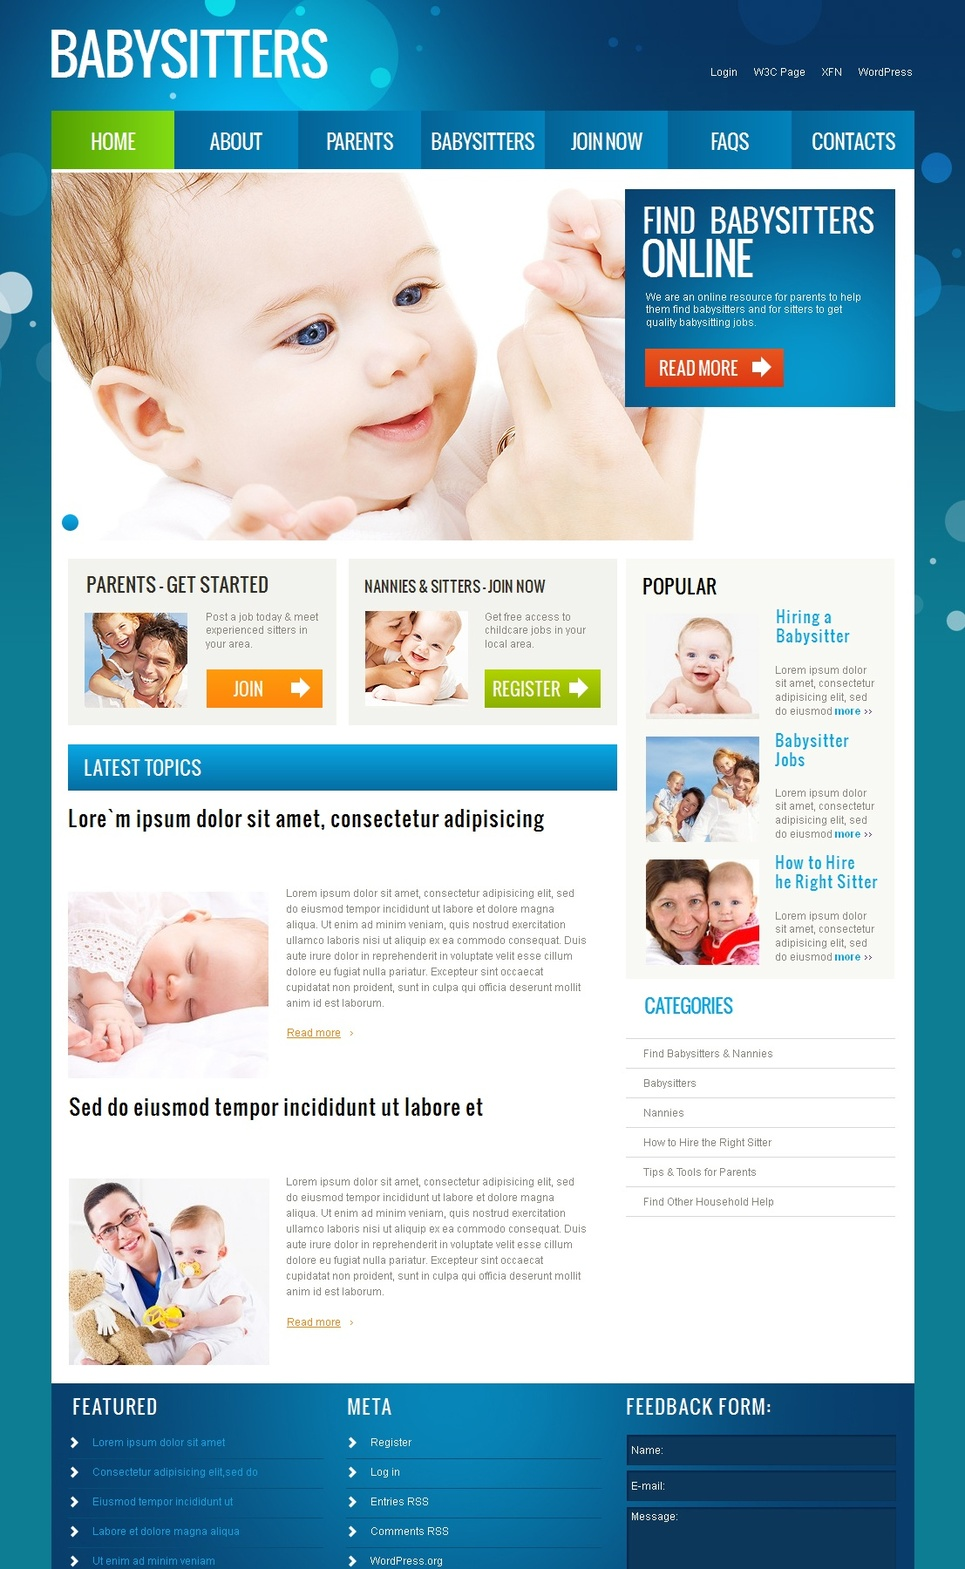 Childcare Website Template with Blue Design - image